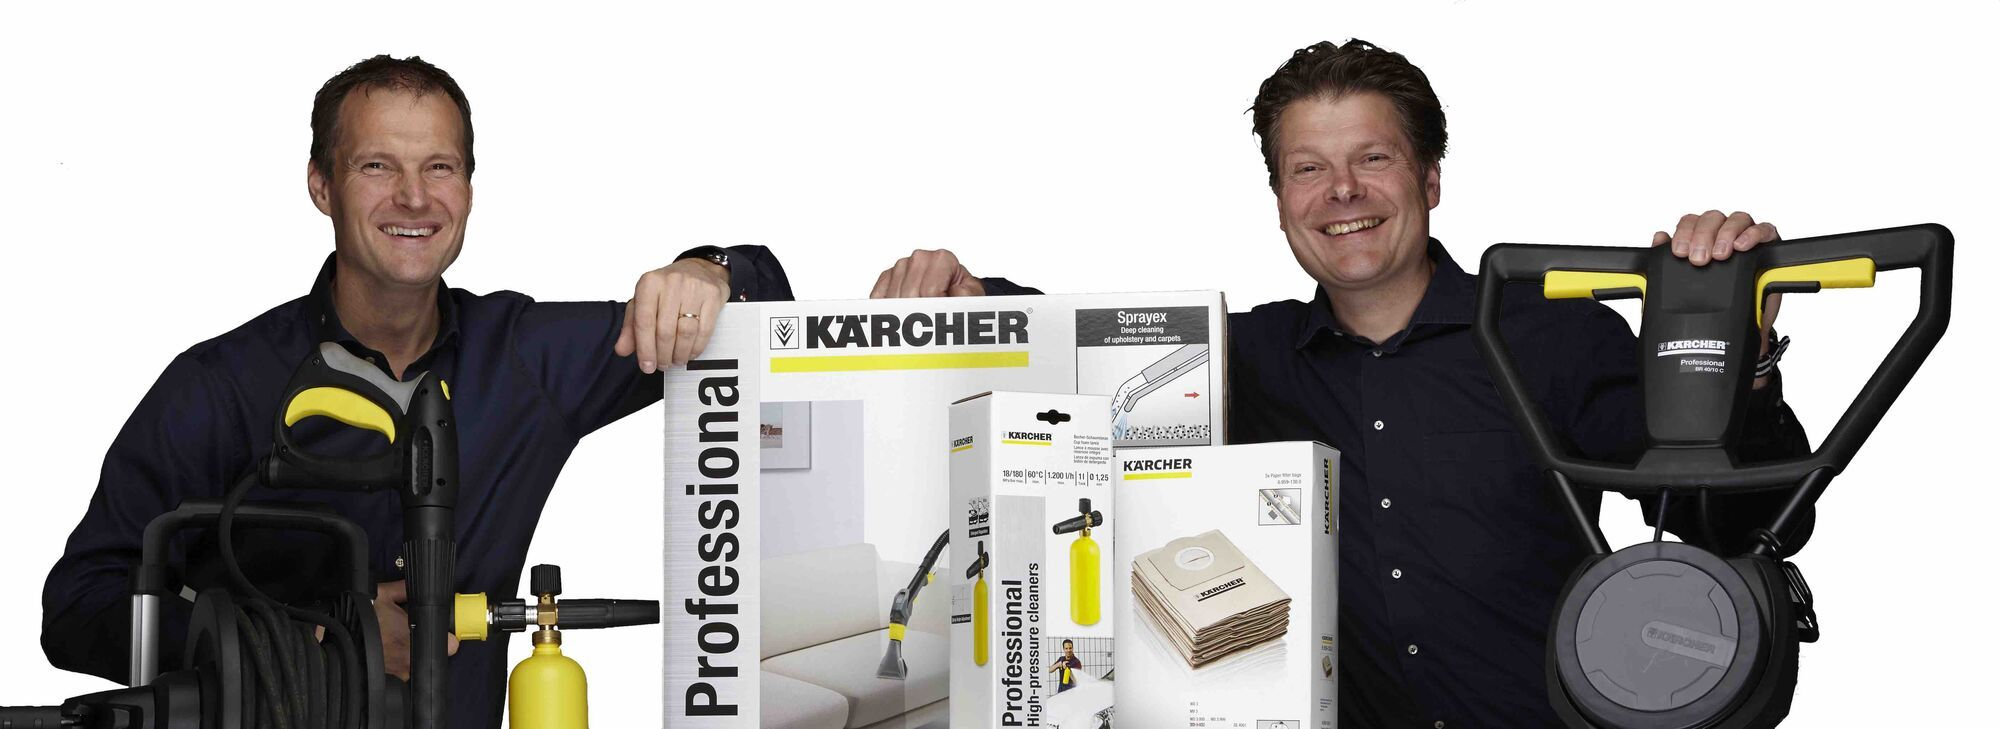 Karcher professional dealer